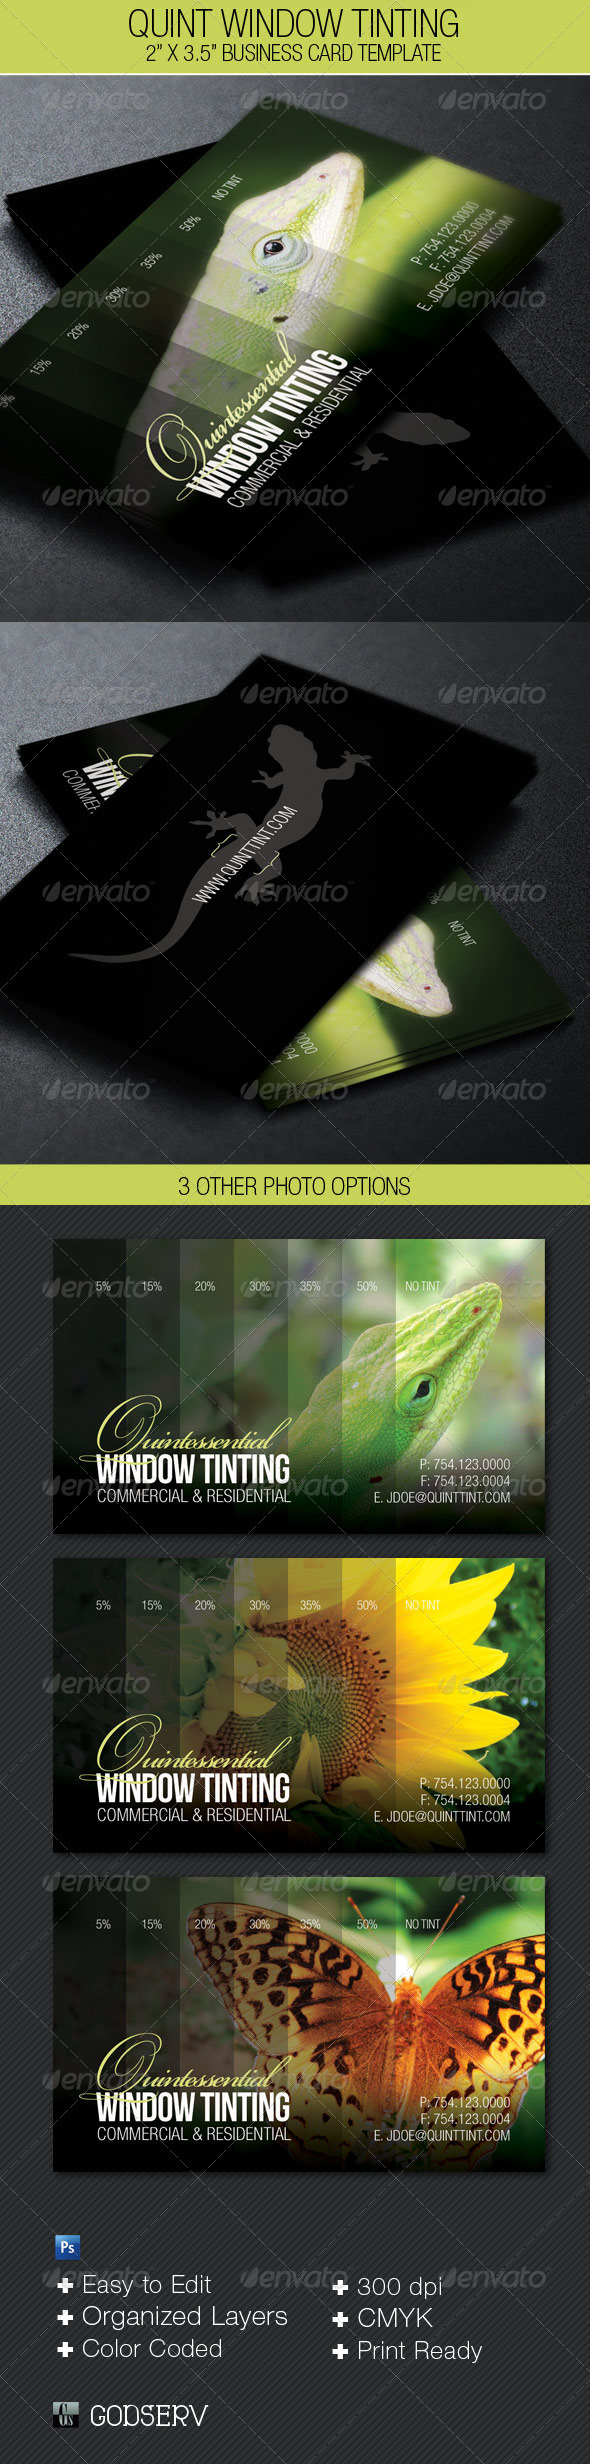 Window Tinting Business Card Template - Industry Specific Business Cards